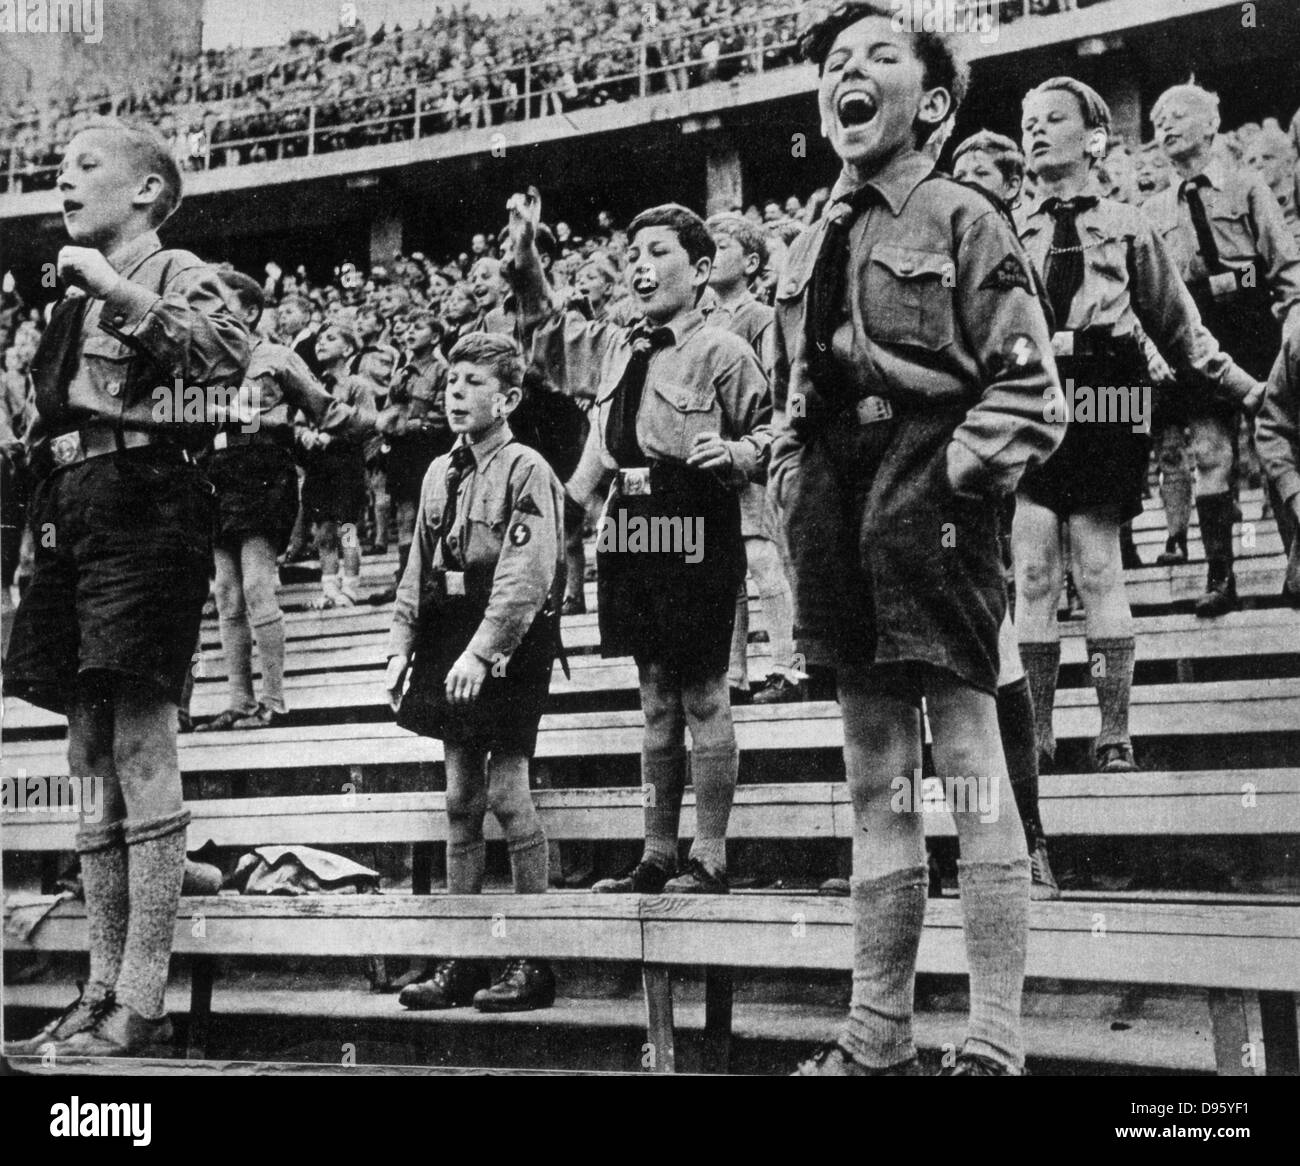 Germany:  Rally of Nazi Youth, 1930s. - Stock Image